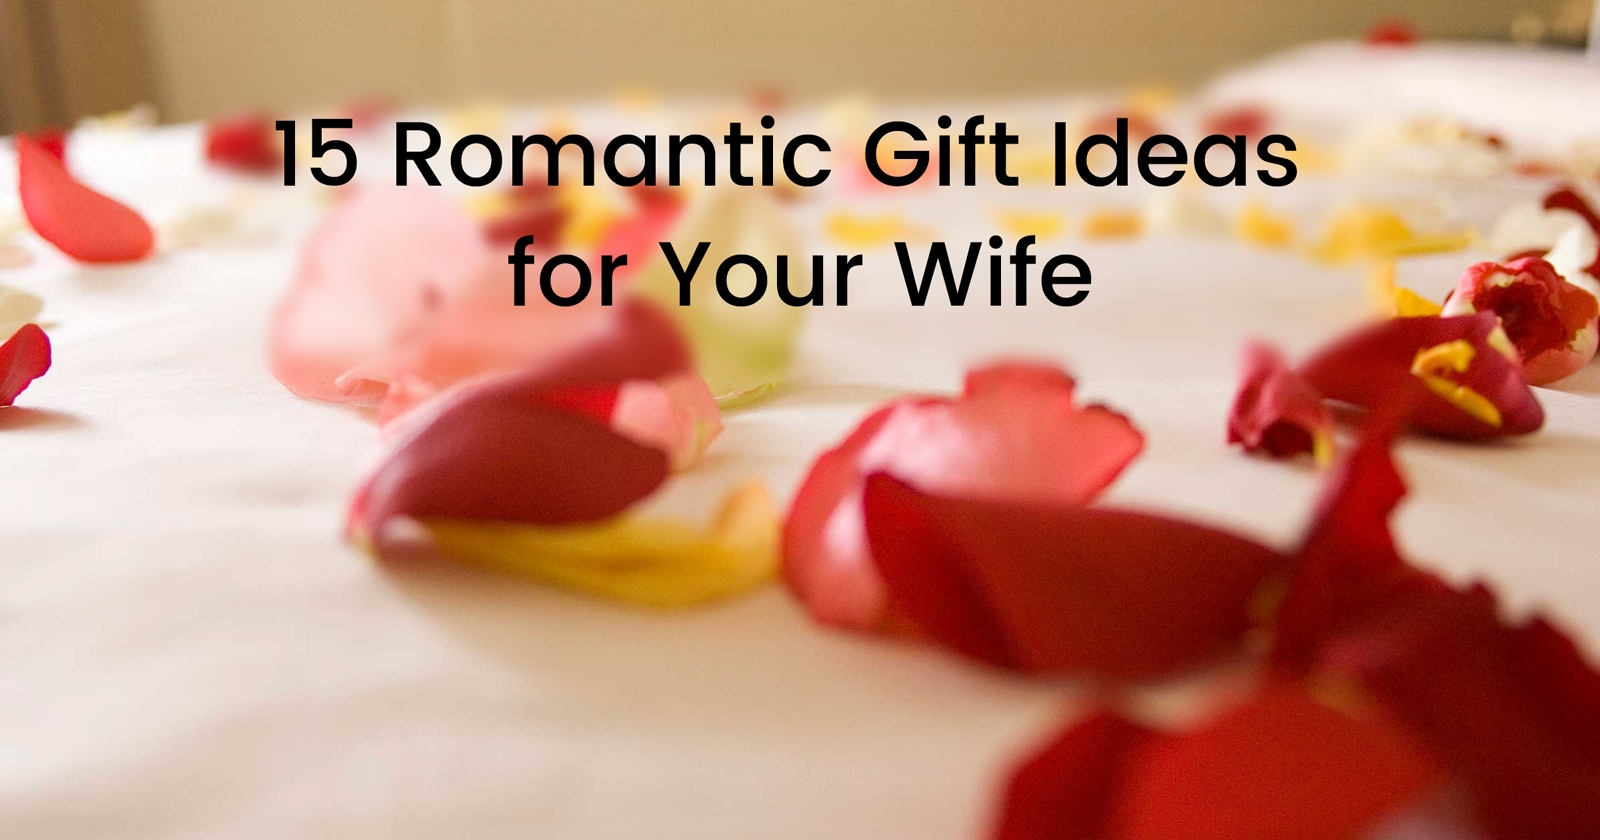 10 Wonderful Birthday Gift For Wife Ideas 15 romantic gift ideas for your wife gift help 5 2021